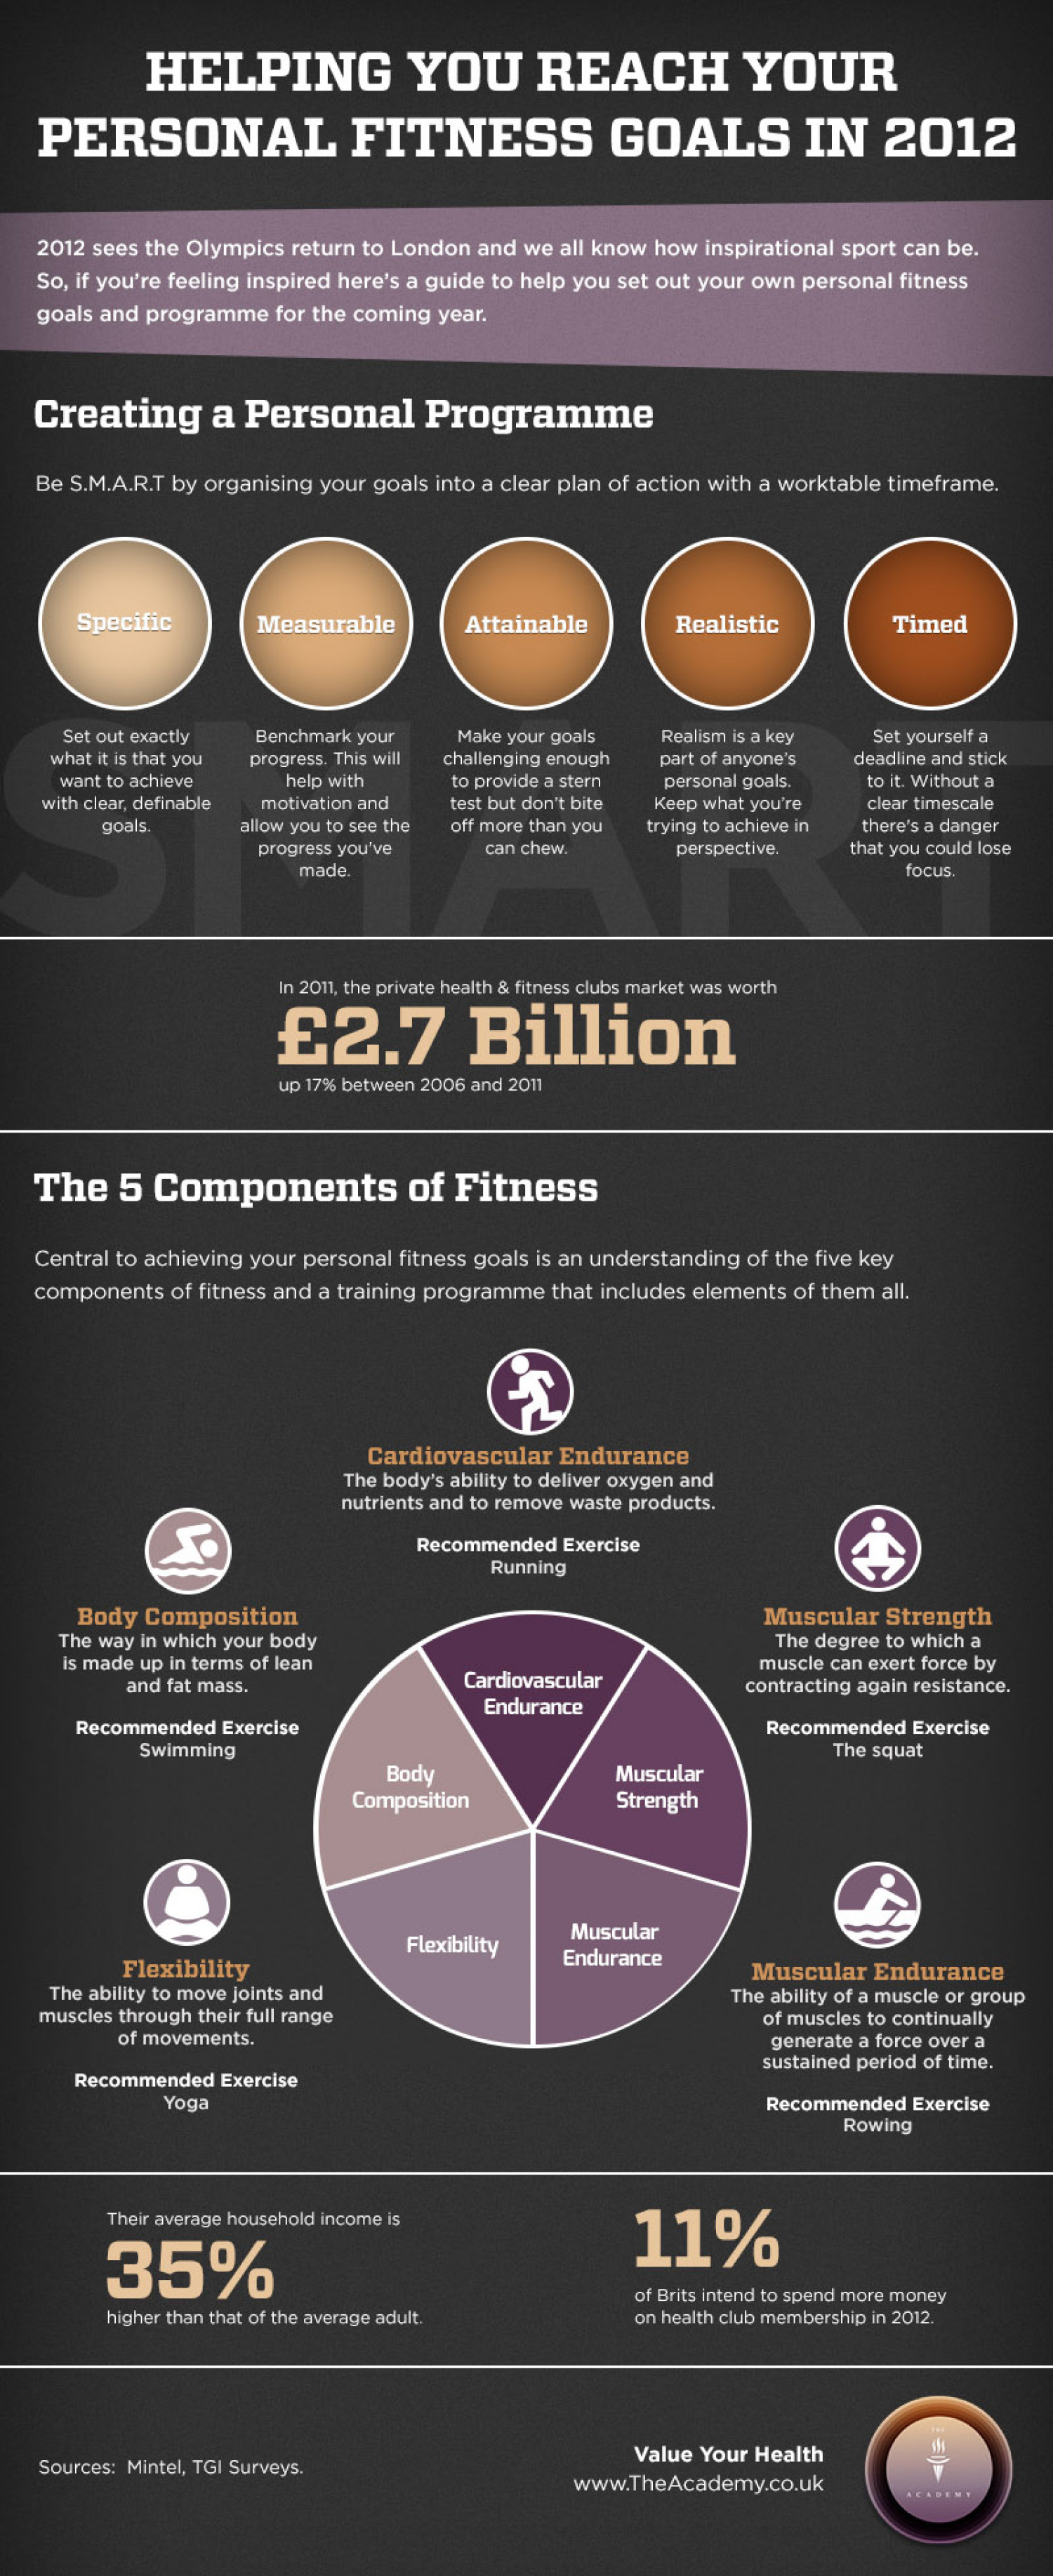 Helping You Reach Your Personal Fitness Goals